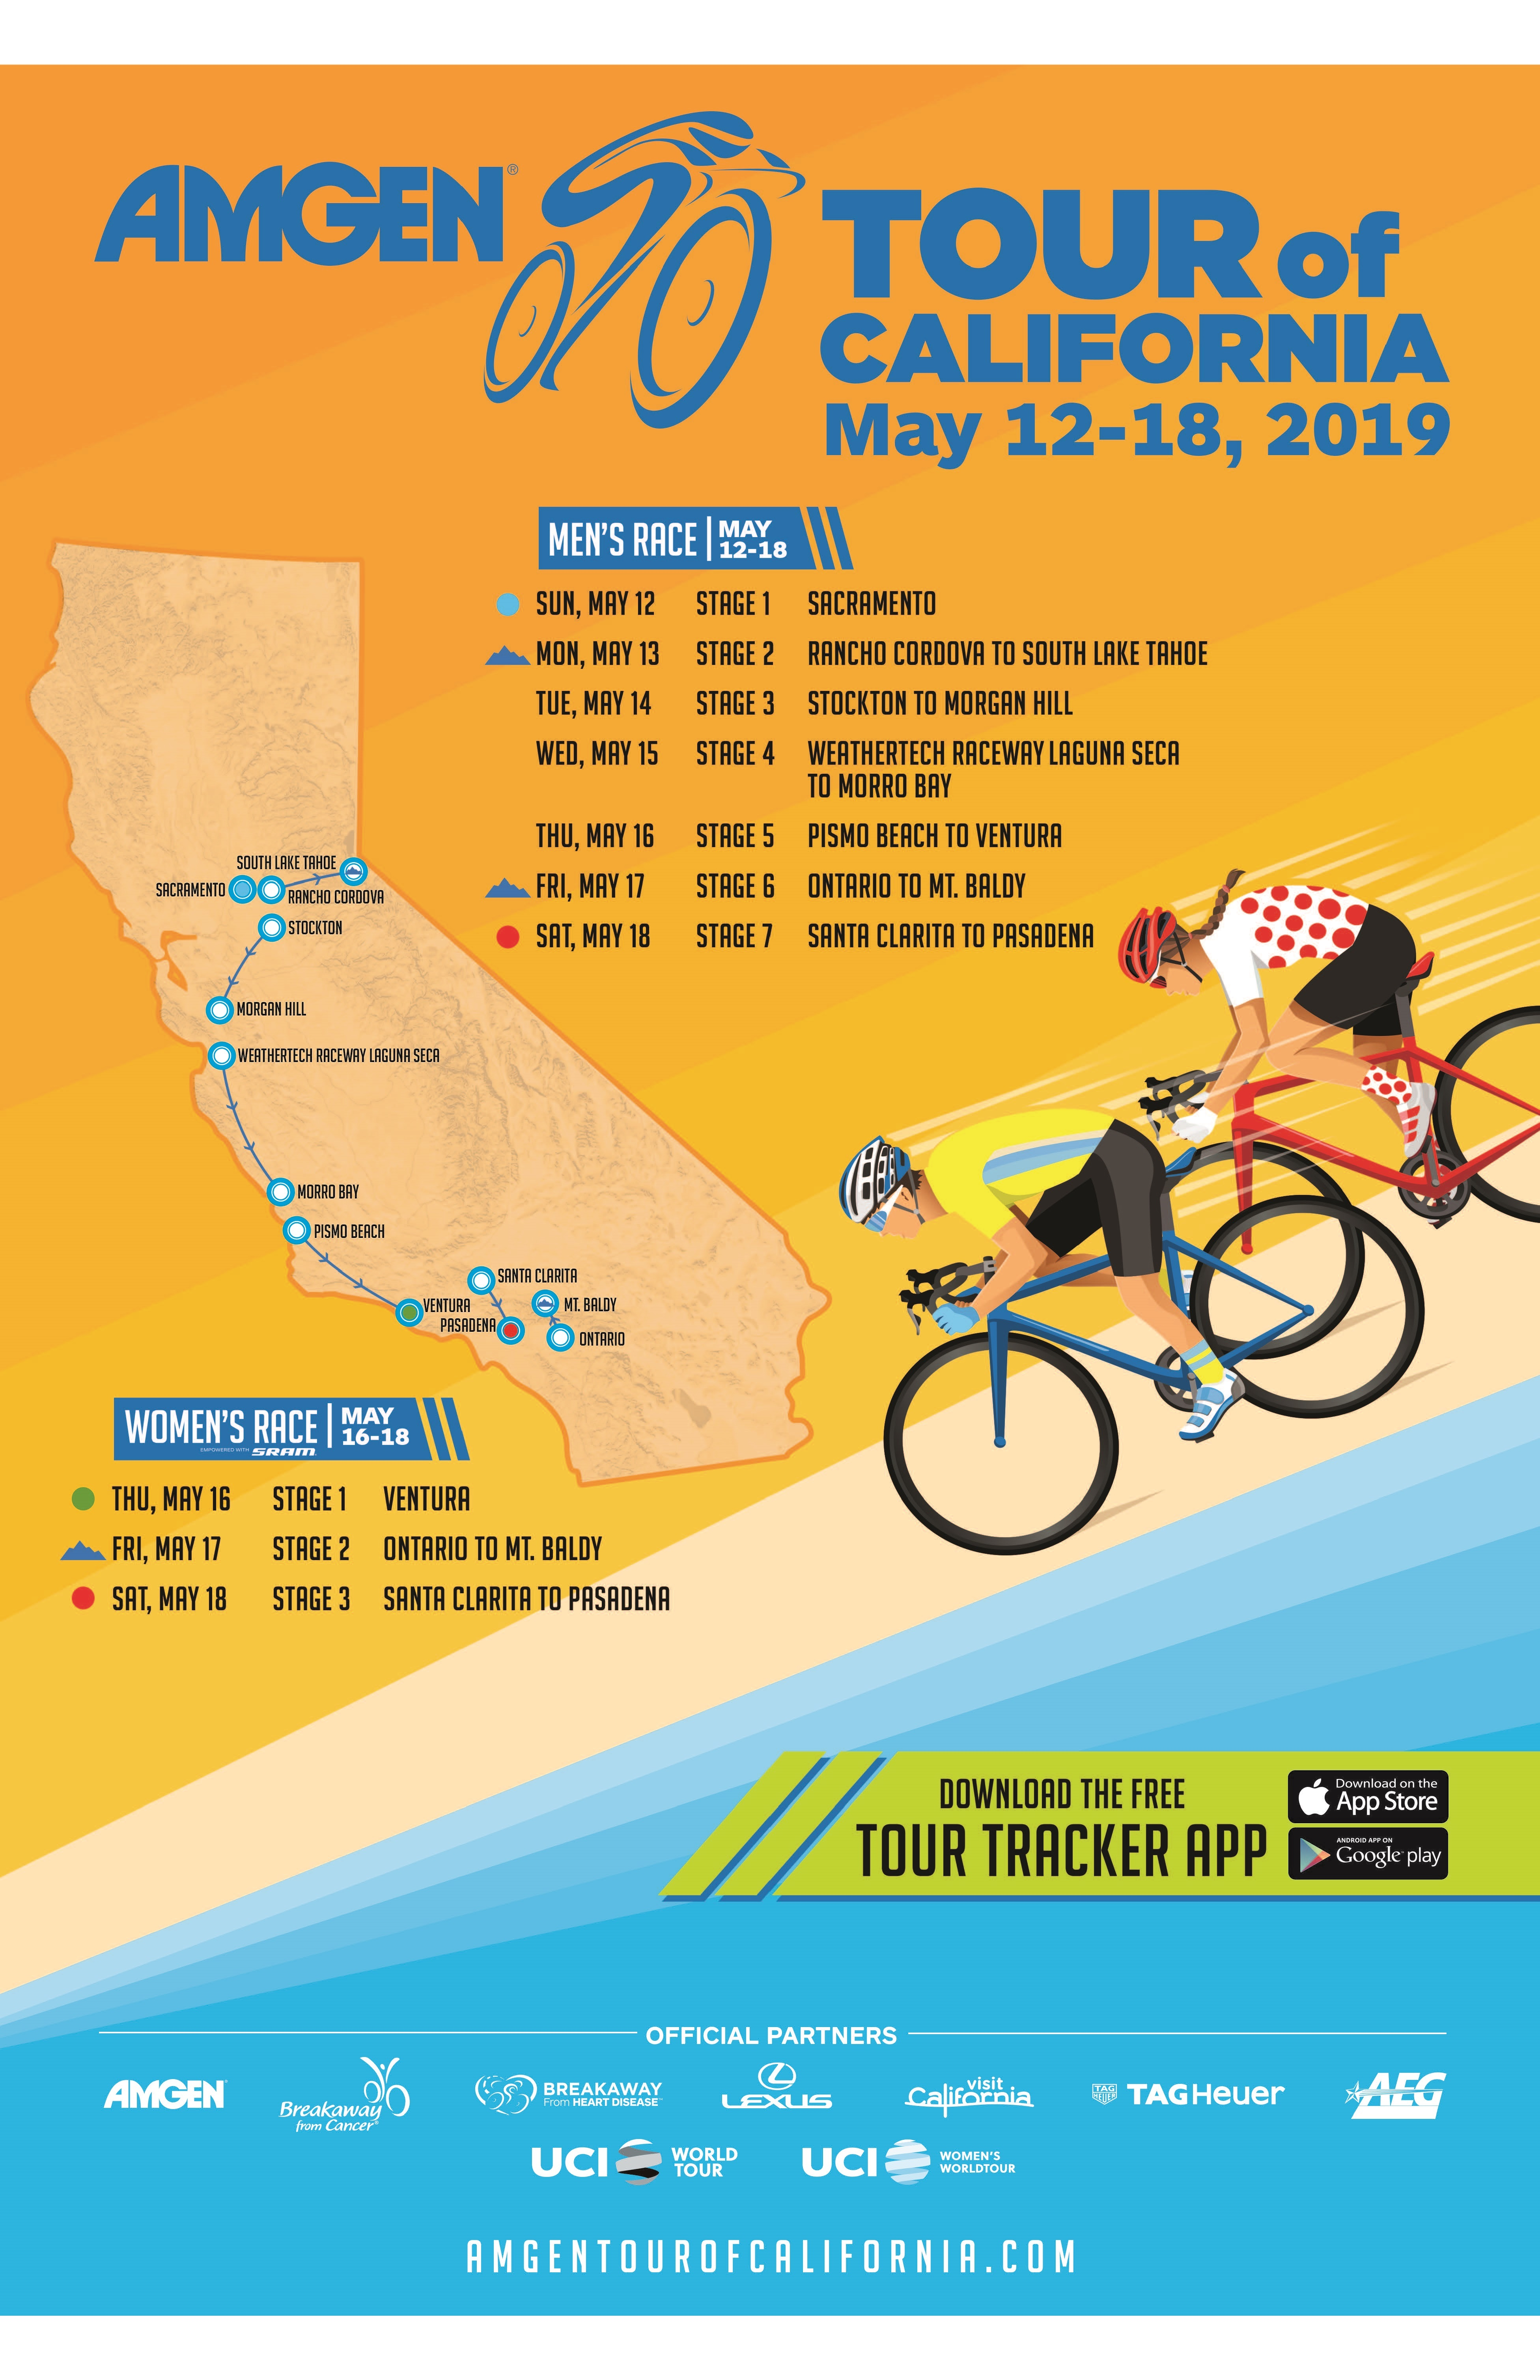 Amgen Tour Of California 2020 Route Amgen Tour of California 2019 Host Cities and Race Schedule